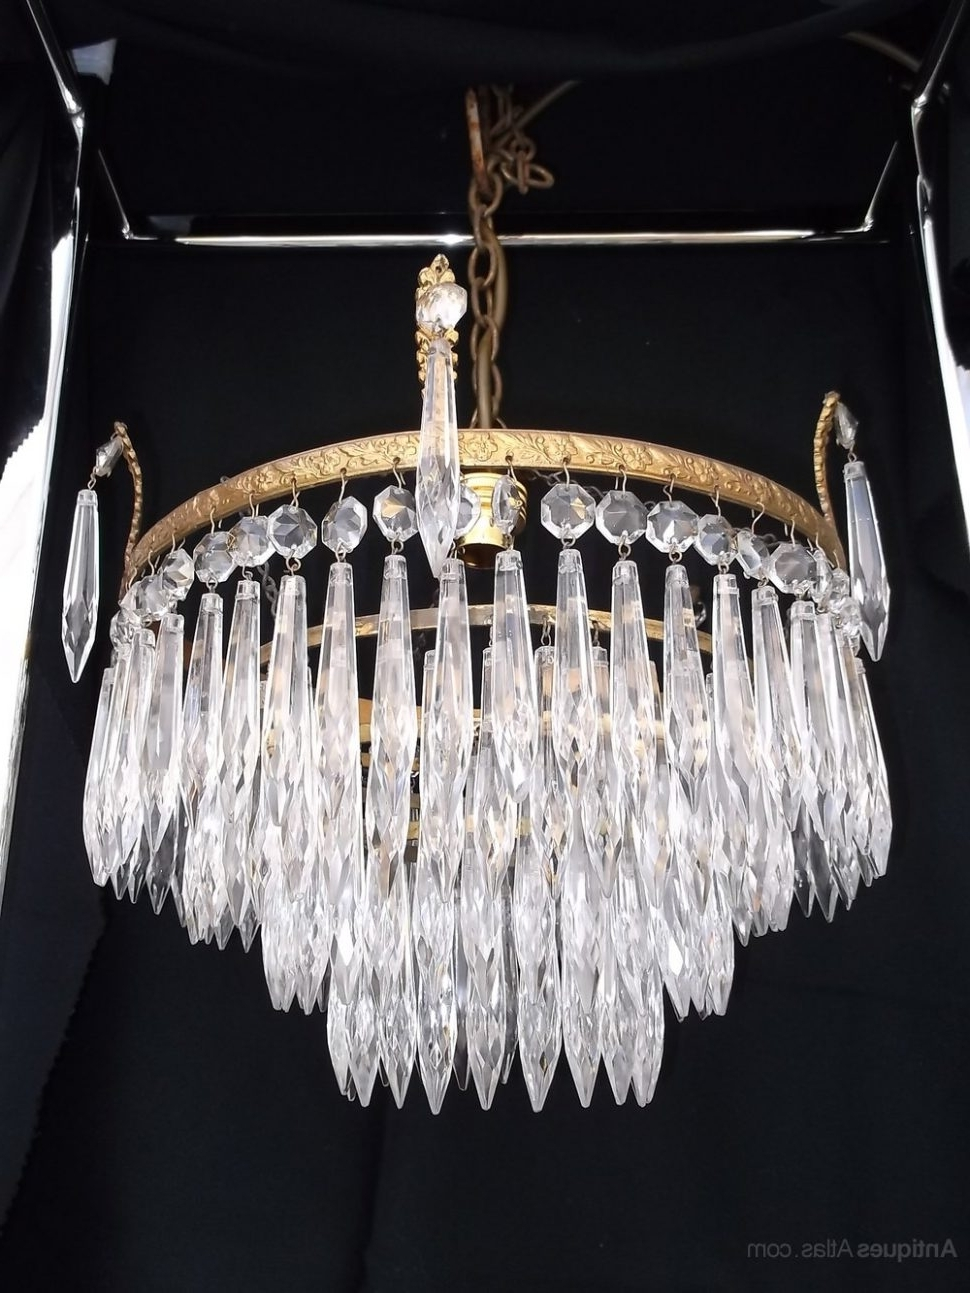 Waterfall Chandeliers With Regard To Well Known Chandeliers Design : Awesome Antique Crystal Chandelier Chandeliers (View 18 of 20)